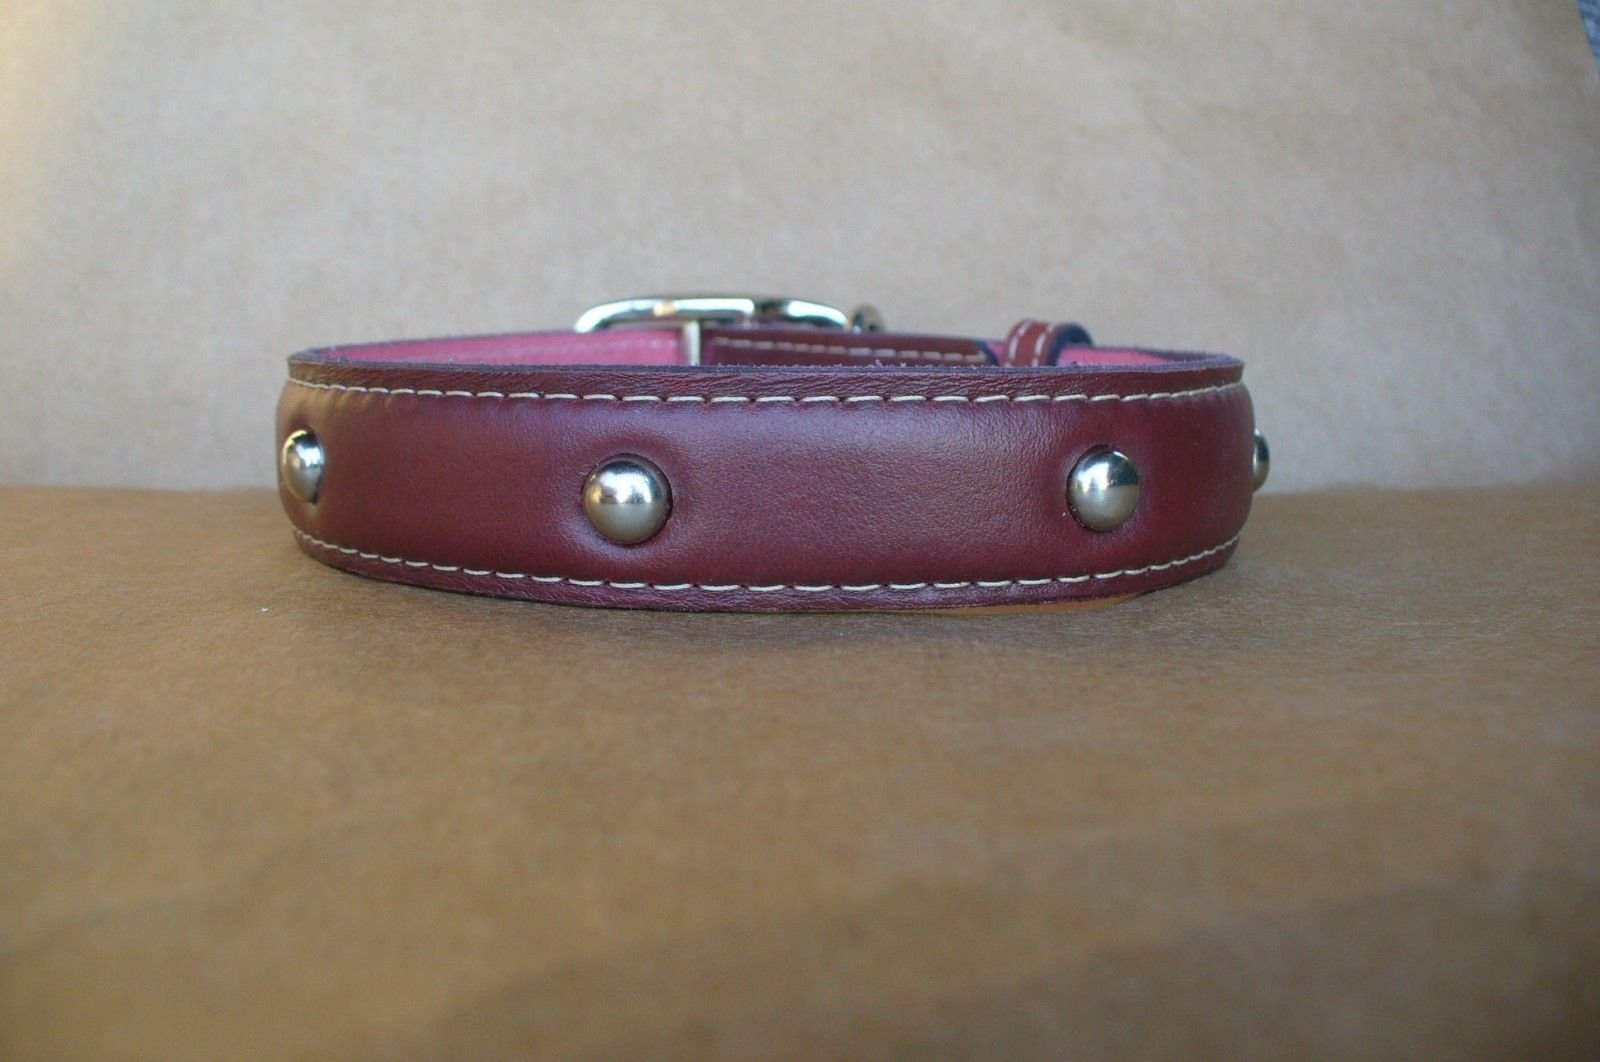 Large Leather Dog Collars - Studded Dog Collars - Unique Dog Collars and Leahes | eBay